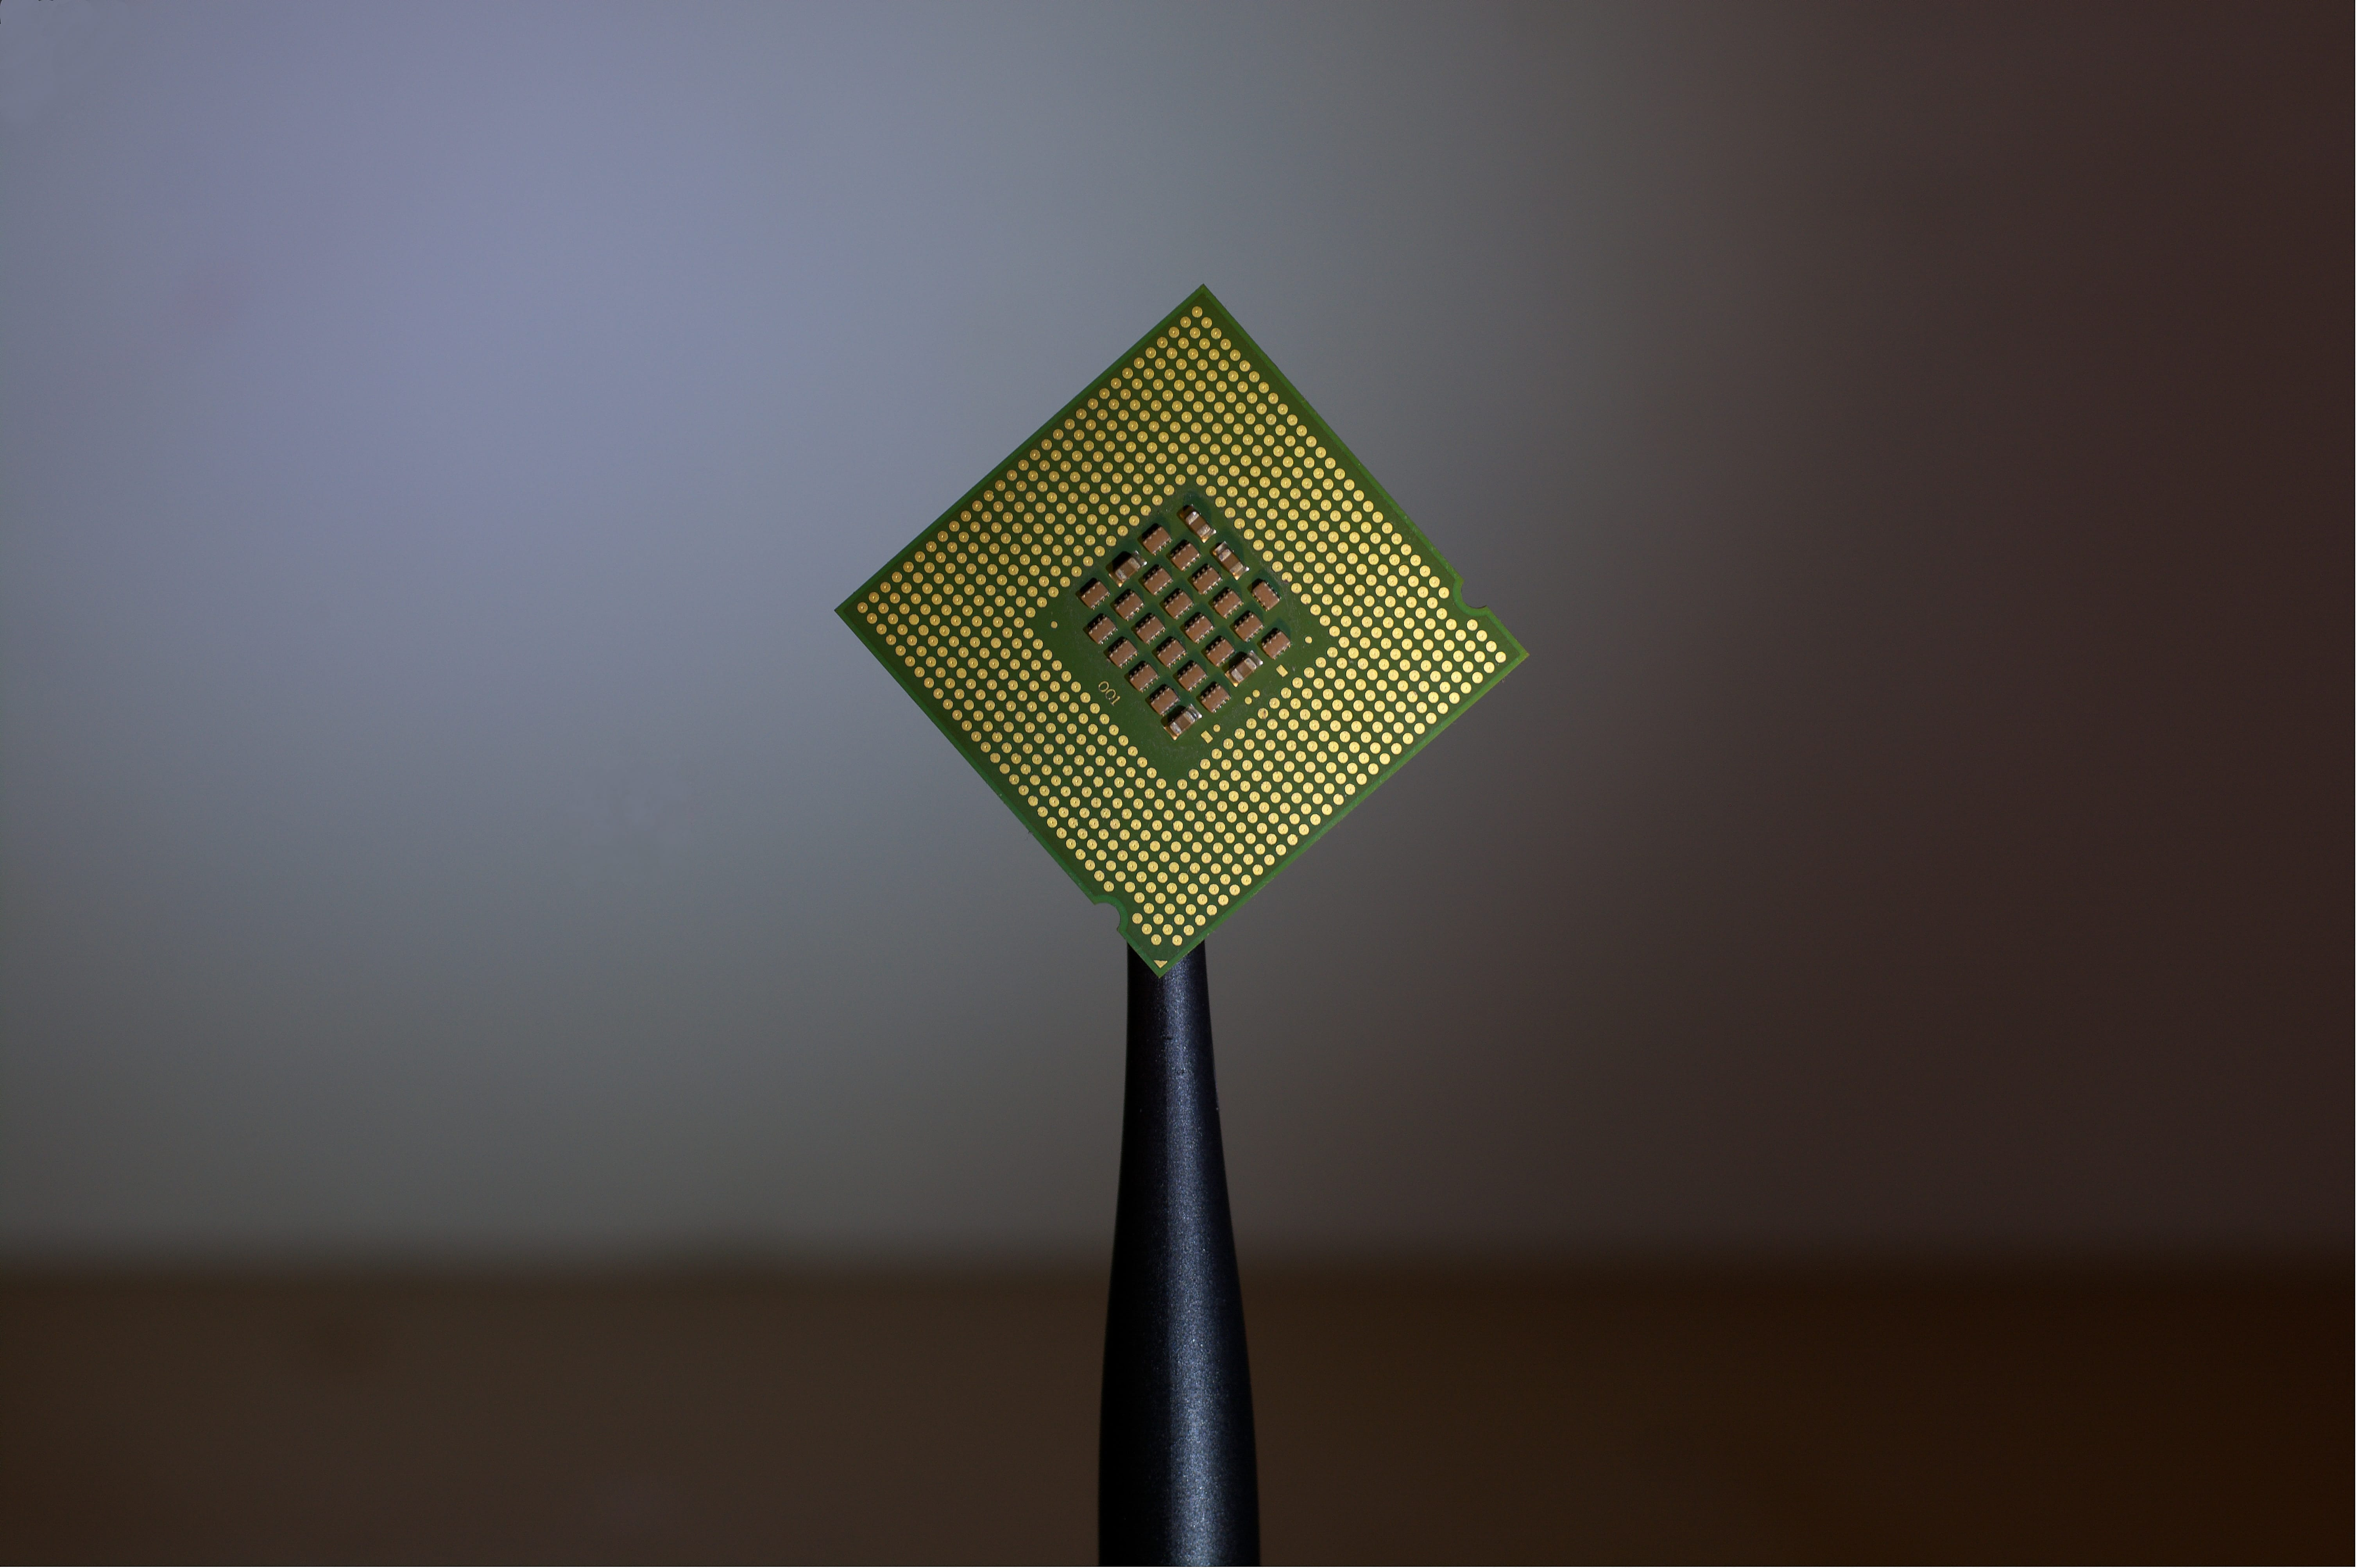 Green and gold computer chip; image by Brian Kostiuk, via Unsplash.com.